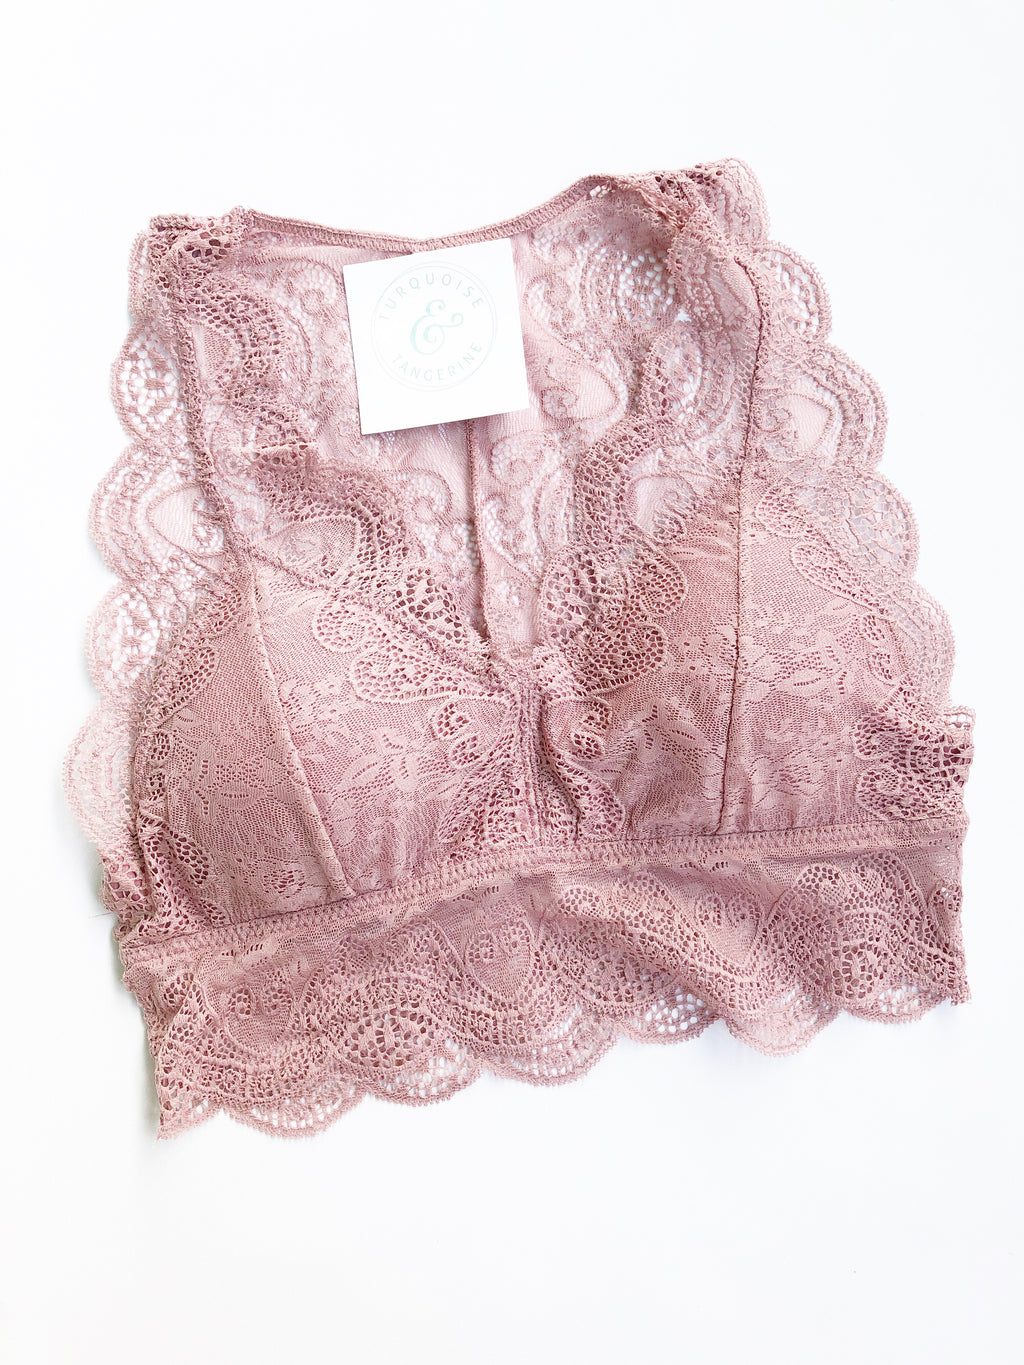 Lace Bralette in Rose